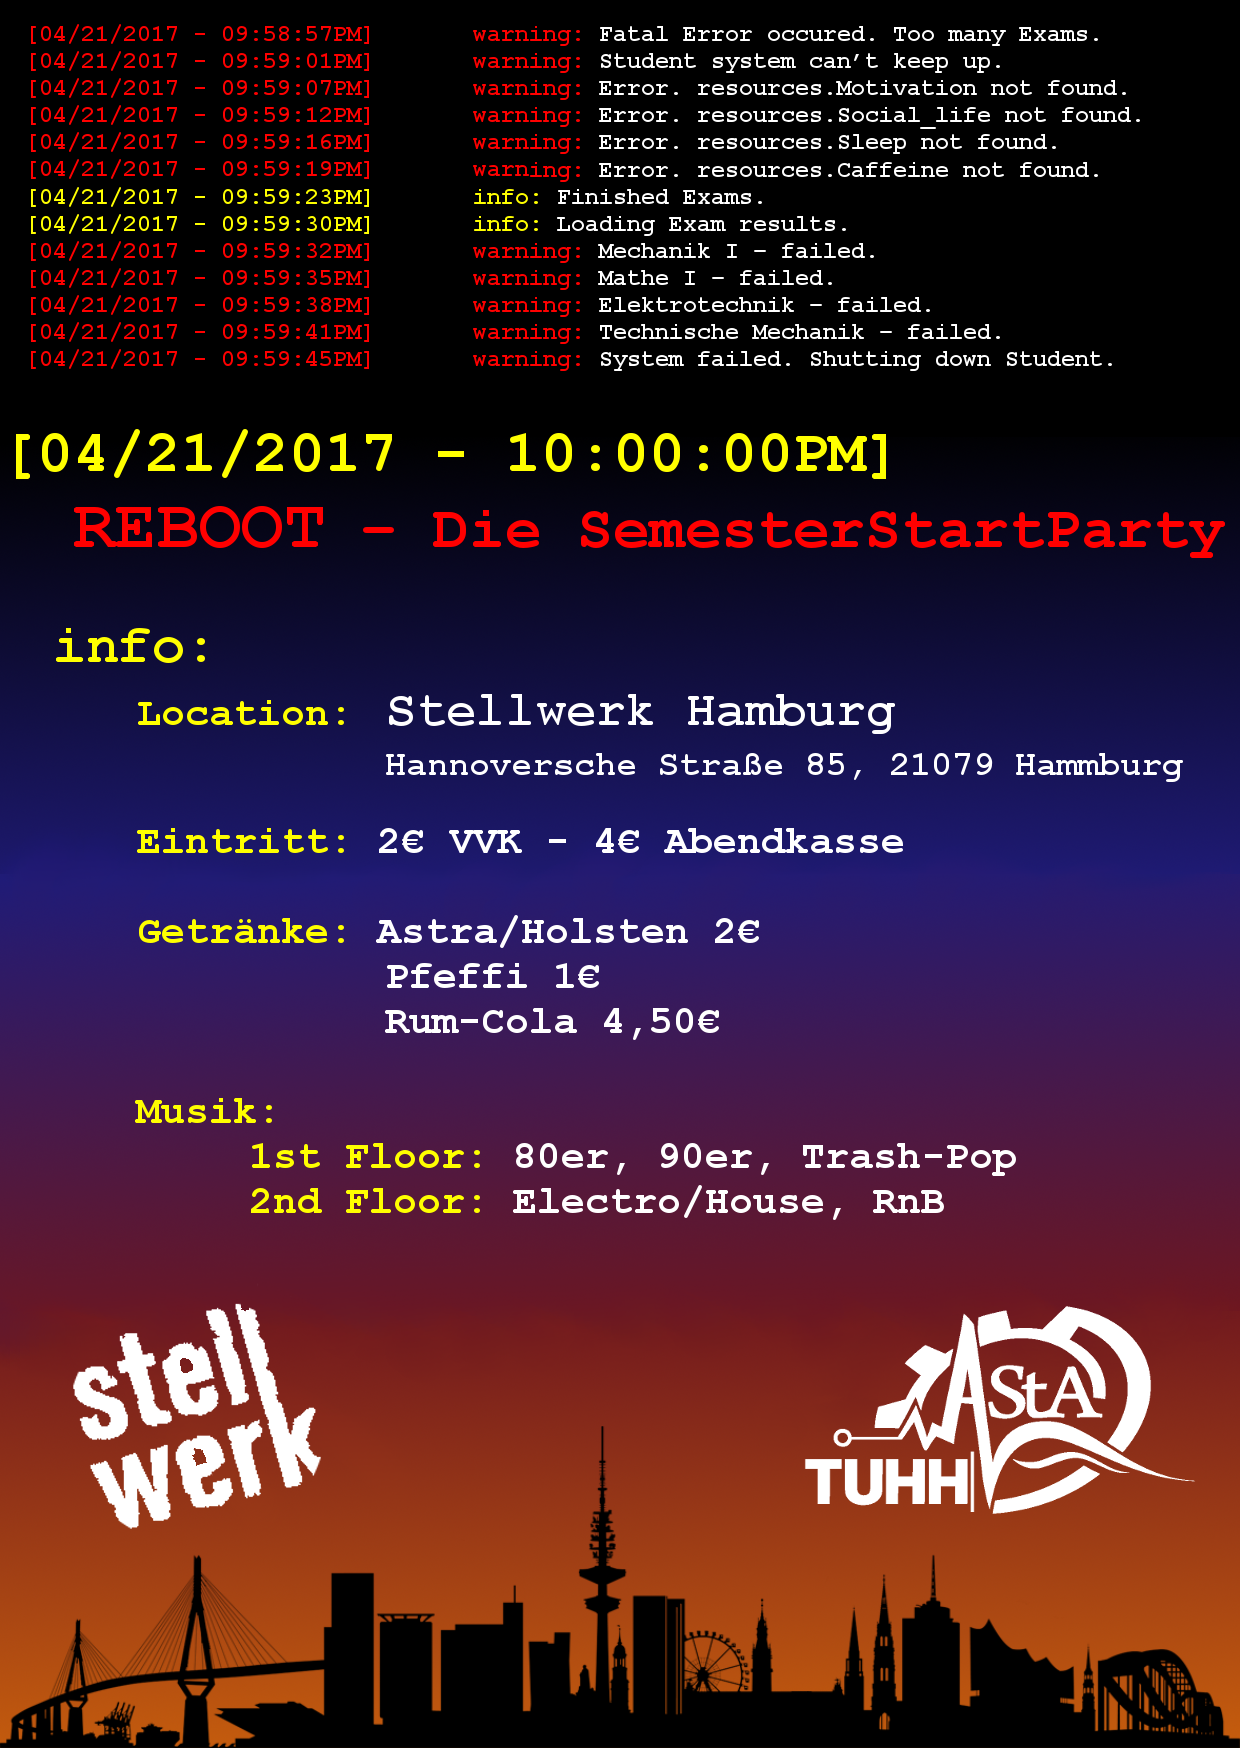 Flyer Reboot 1240x1748 Final Maybe Reboot  Die SemesterStartParty